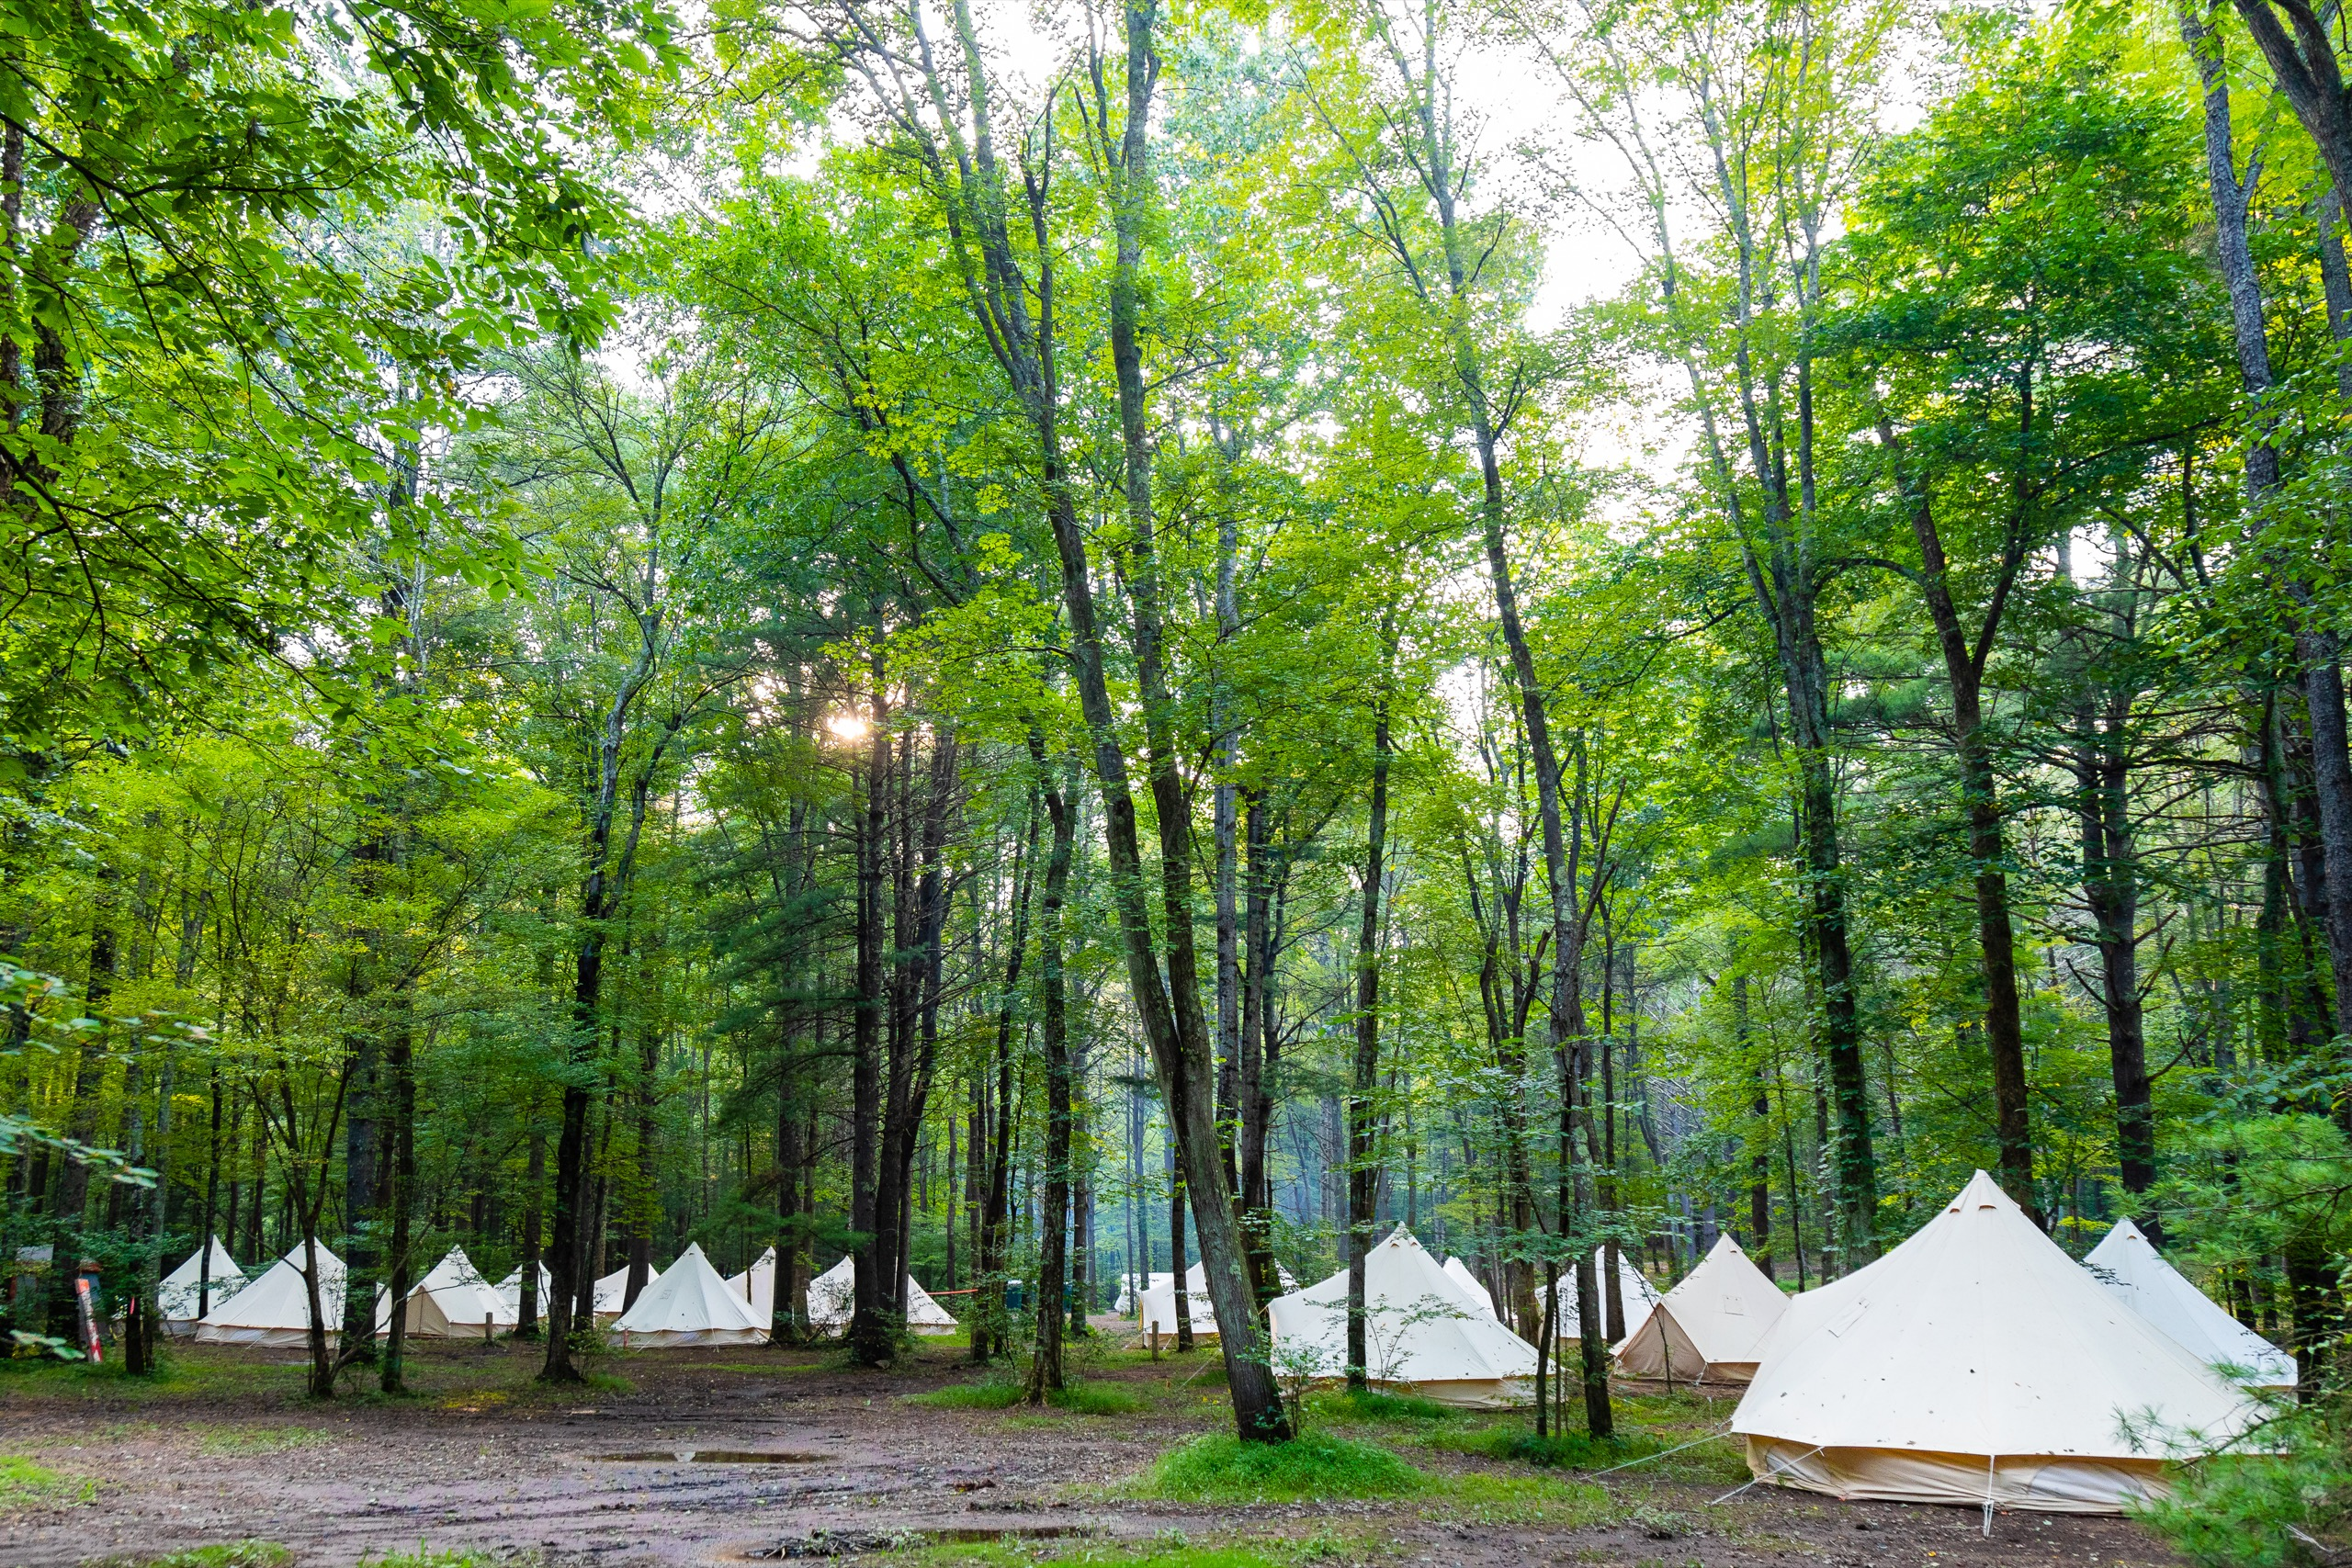 Yurts in a forest